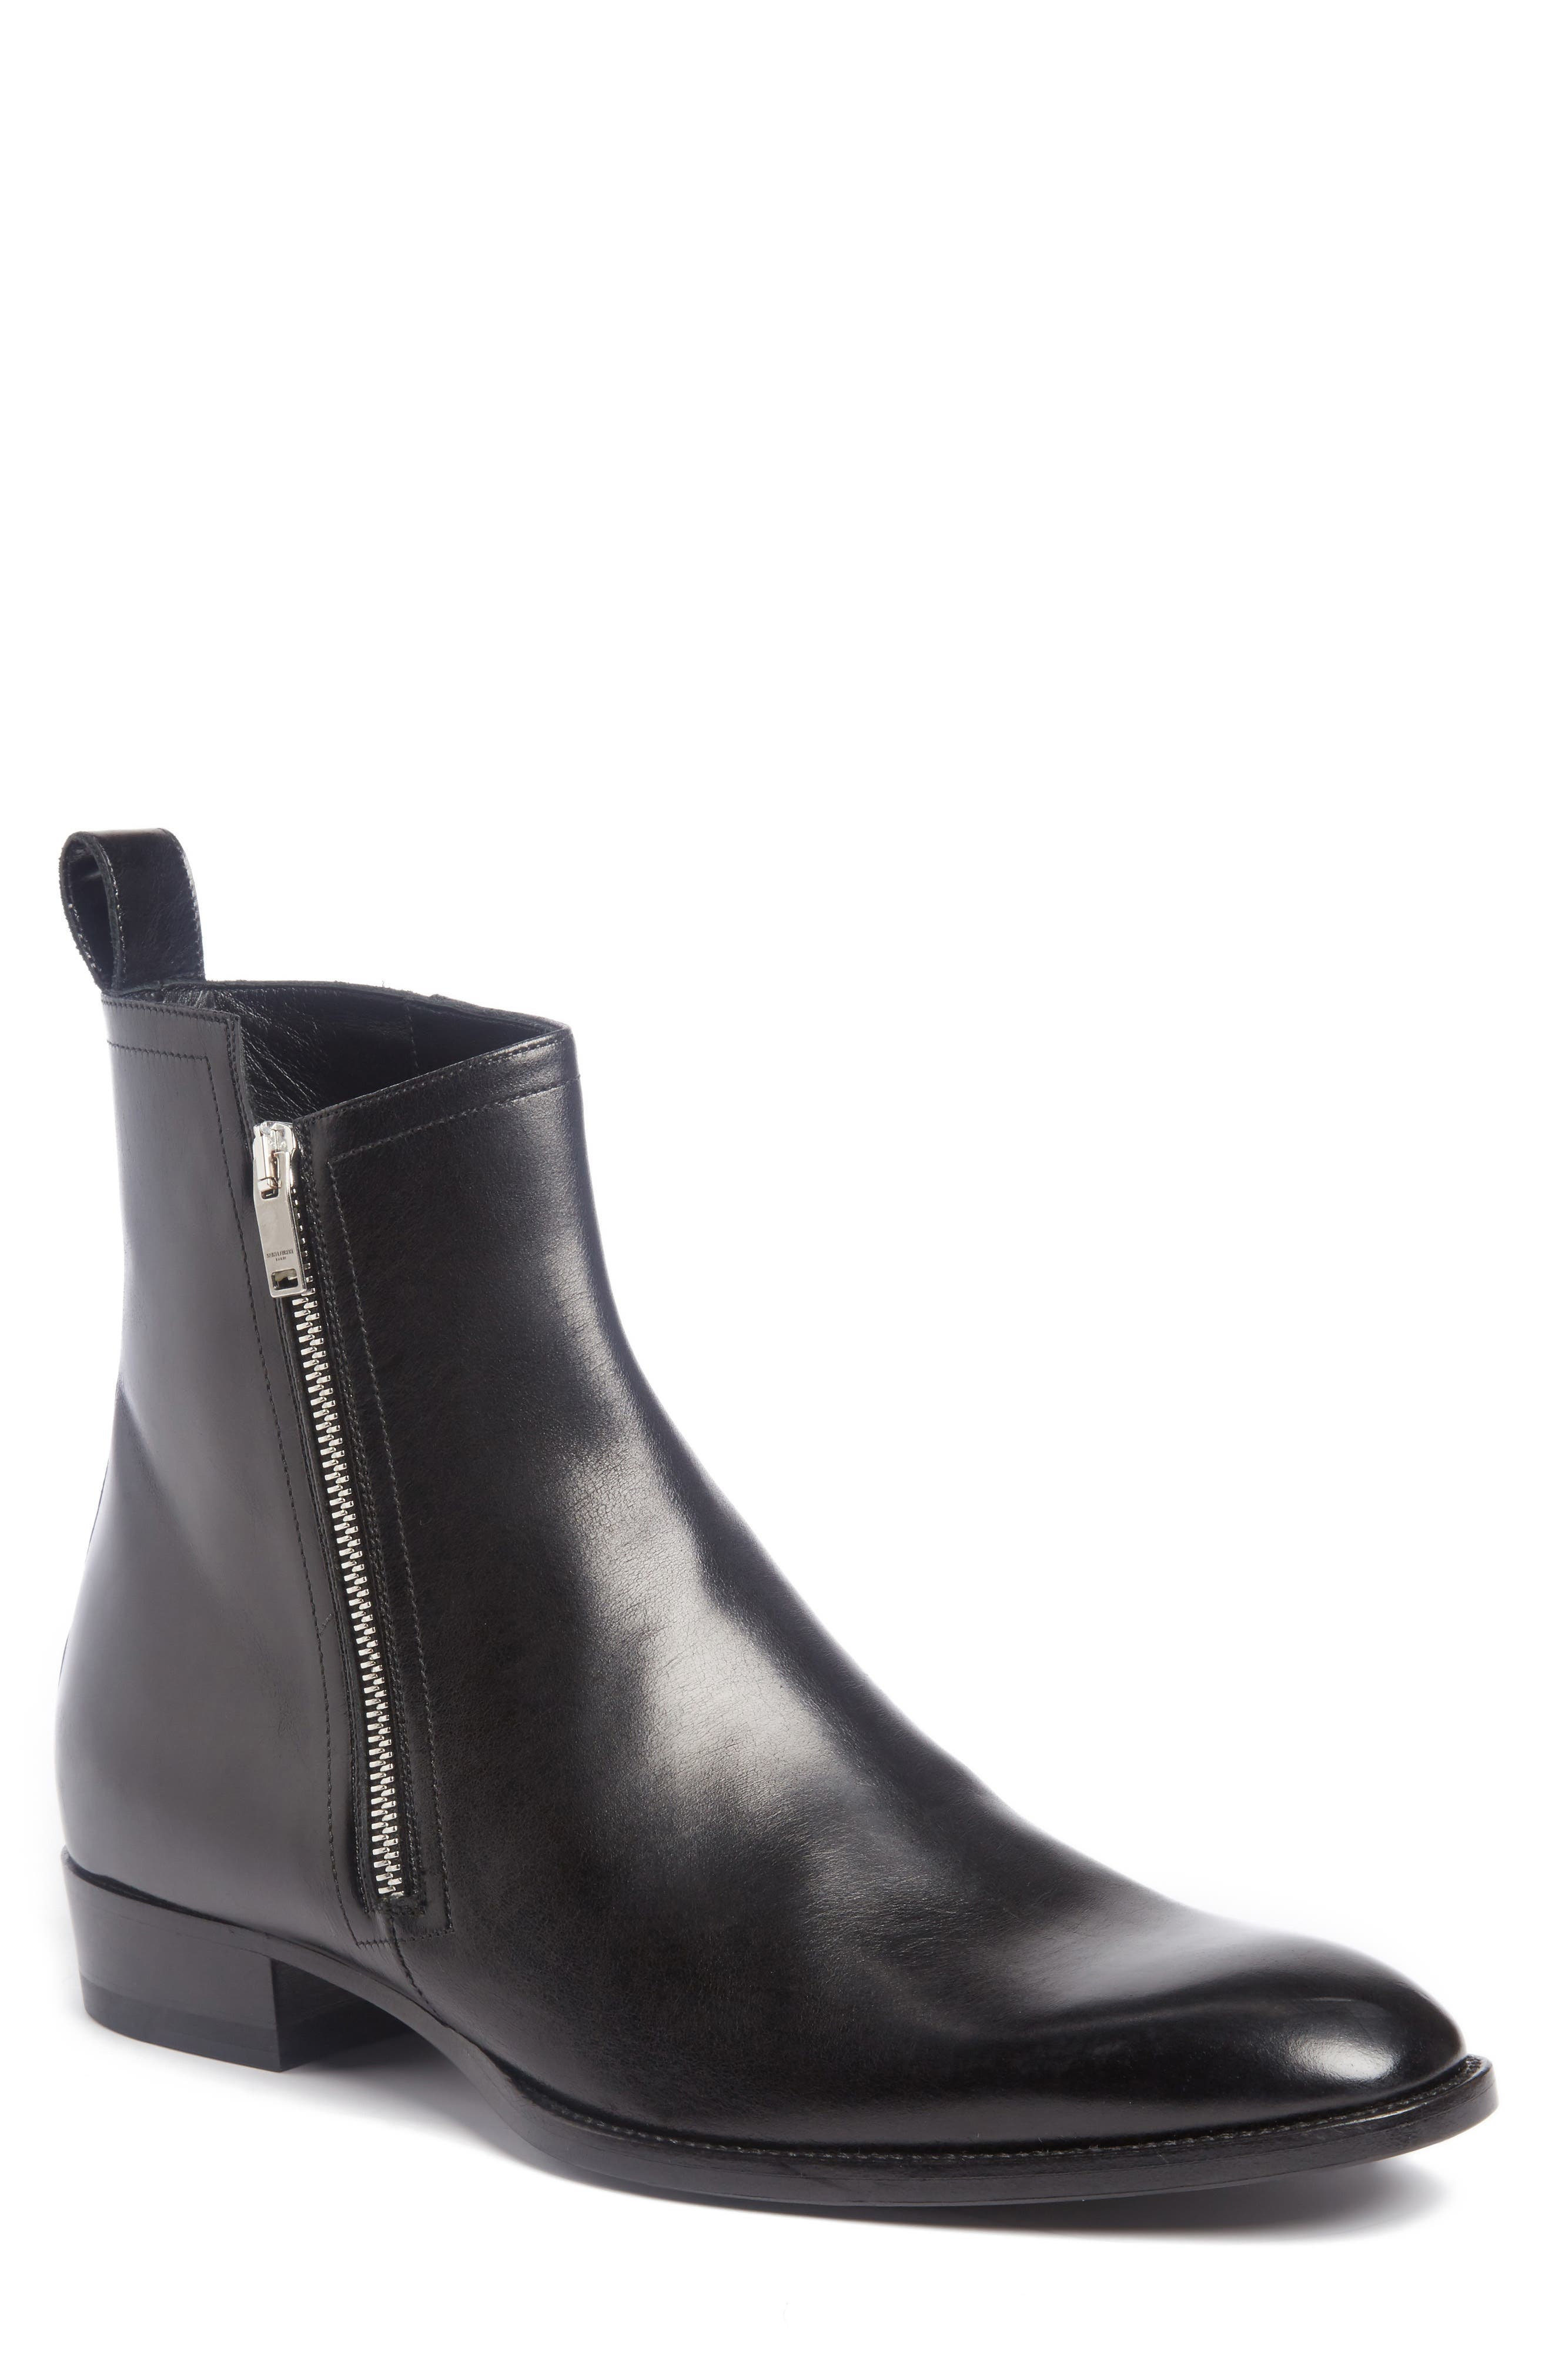 Wyatt Side Zip Boot,                             Main thumbnail 1, color,                             Nero Leather